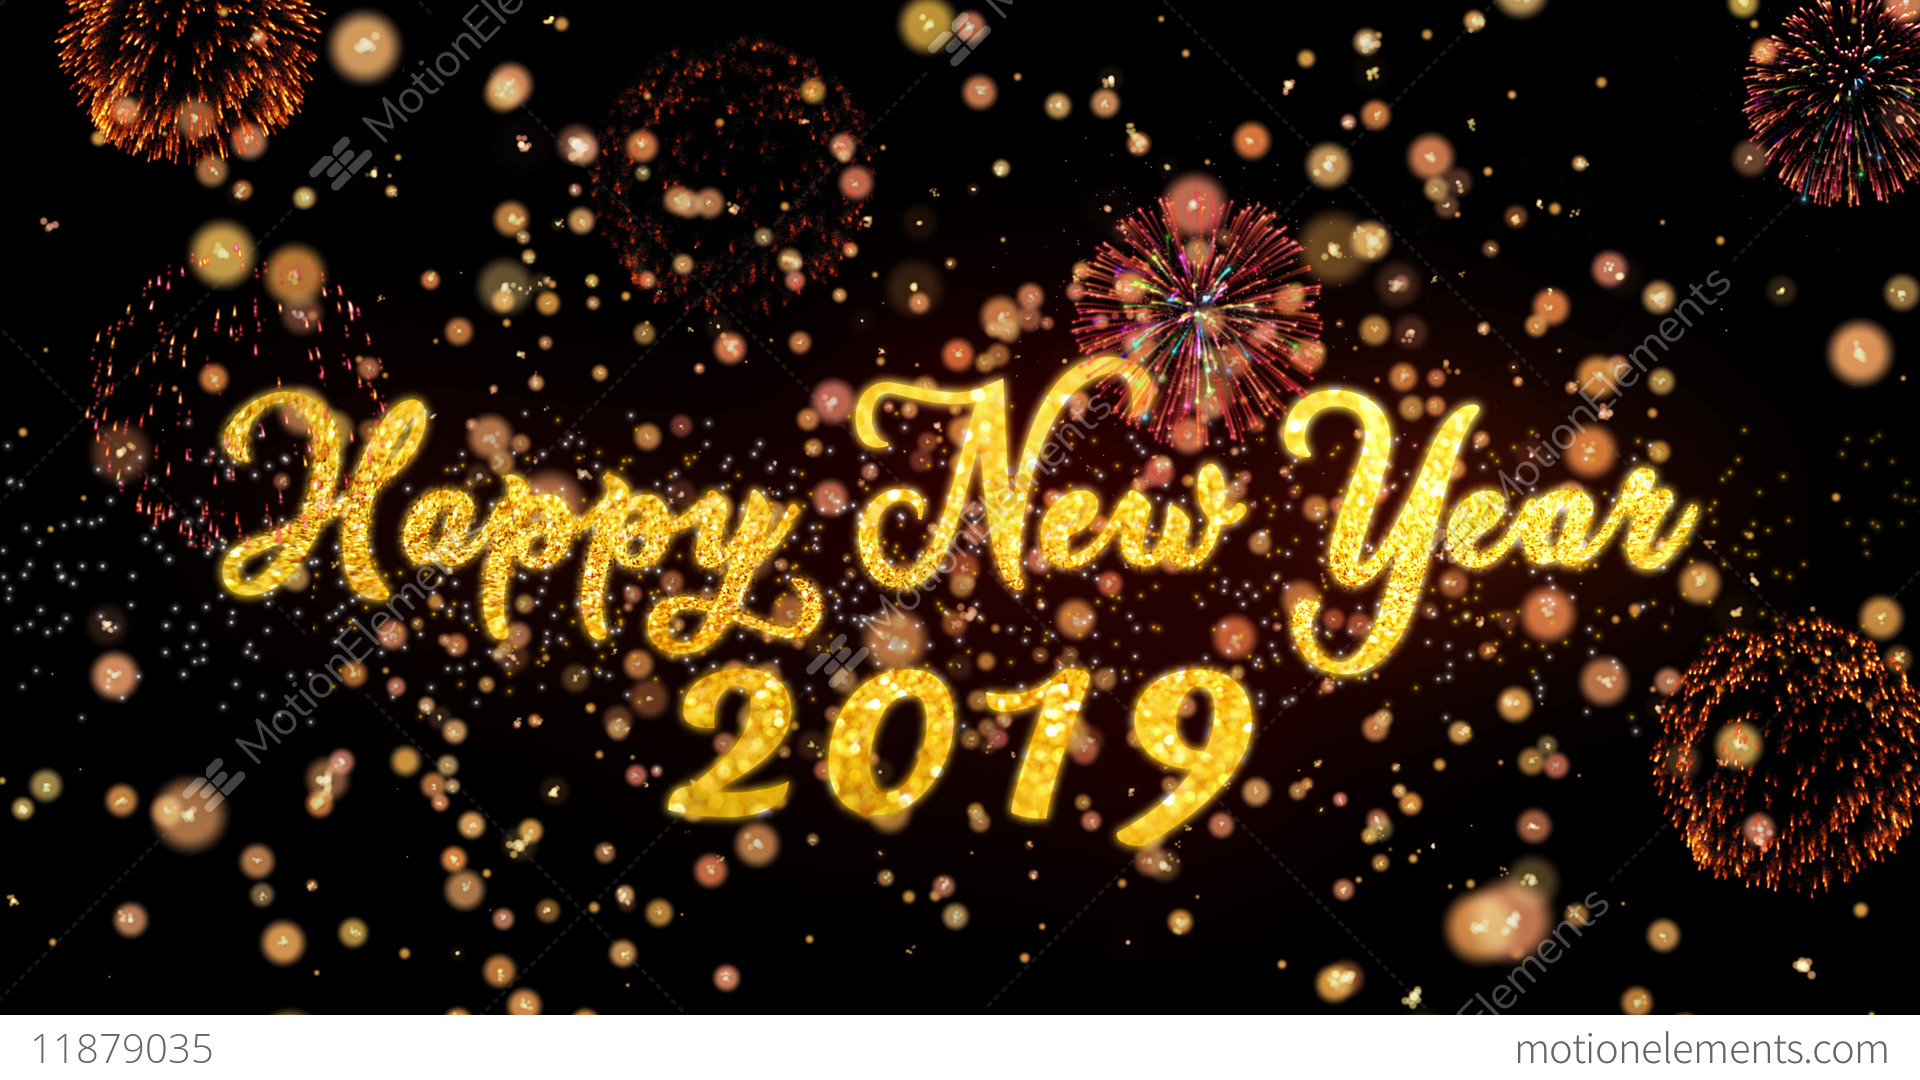 Happy New Year 2019 Abstract Particles And Glitter - Happy New Year 2019 Animation , HD Wallpaper & Backgrounds